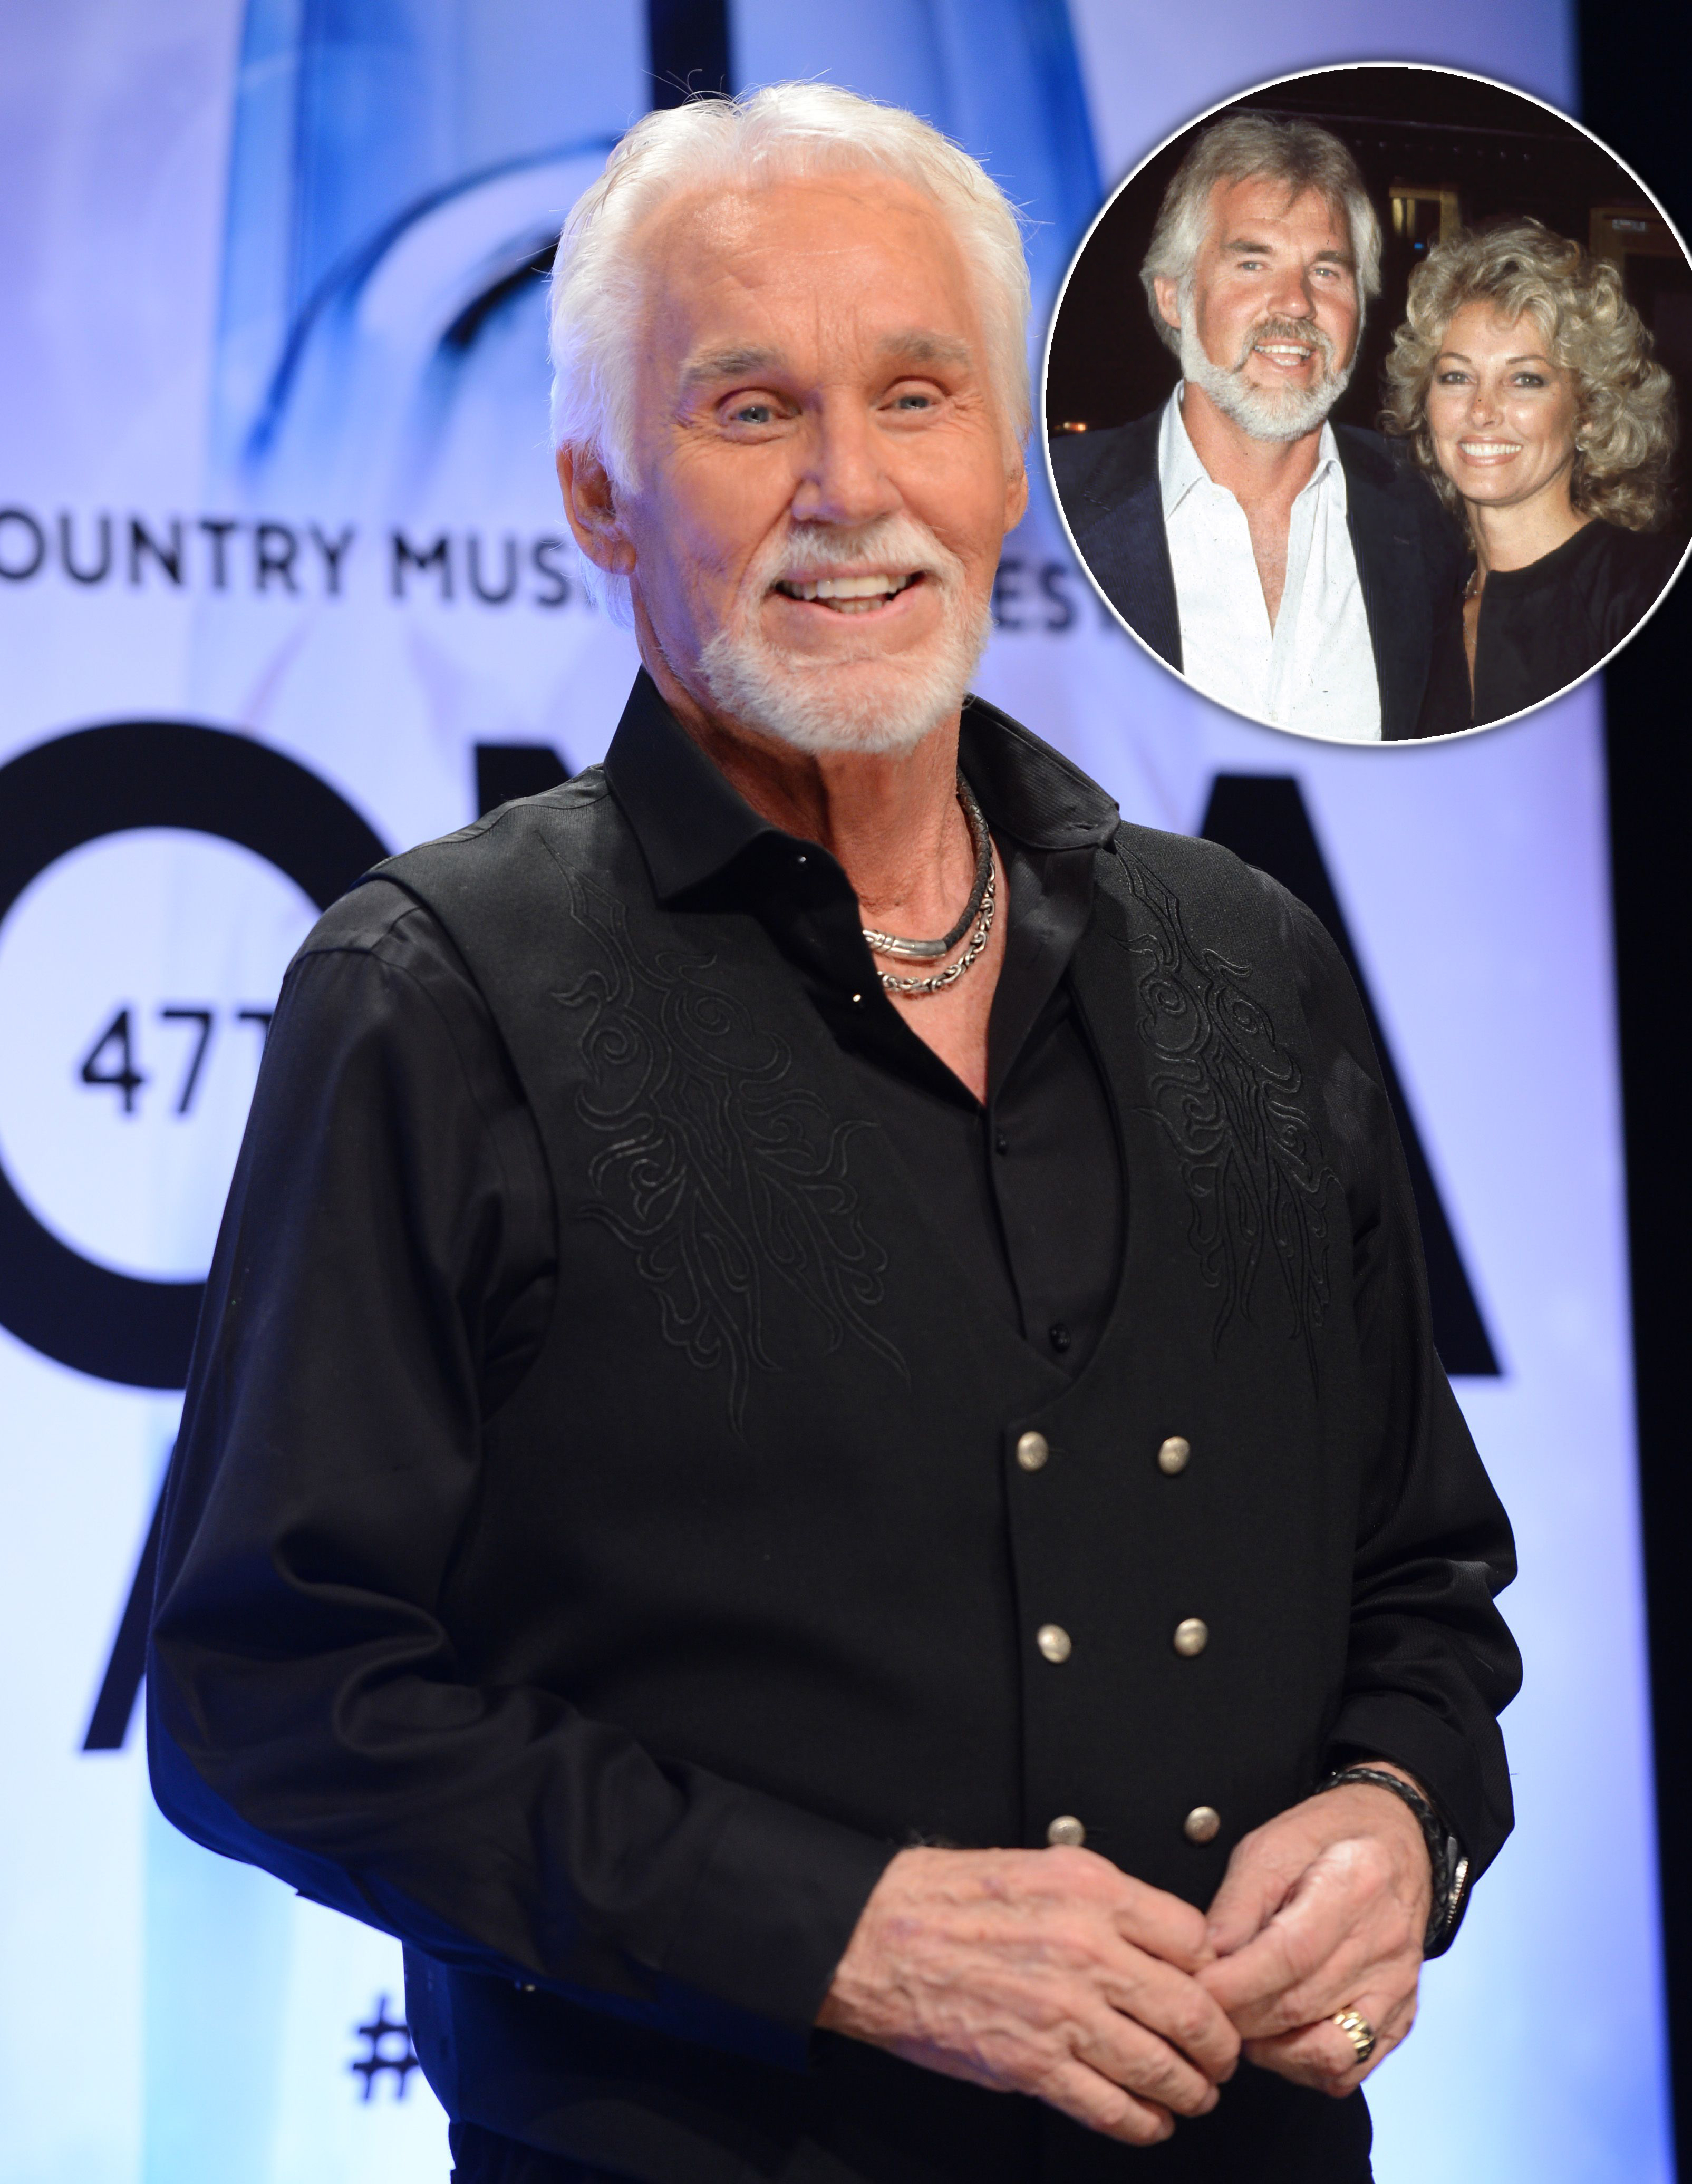 Kenny Rogers Ex Wife Marianne Remembers Him After His Death